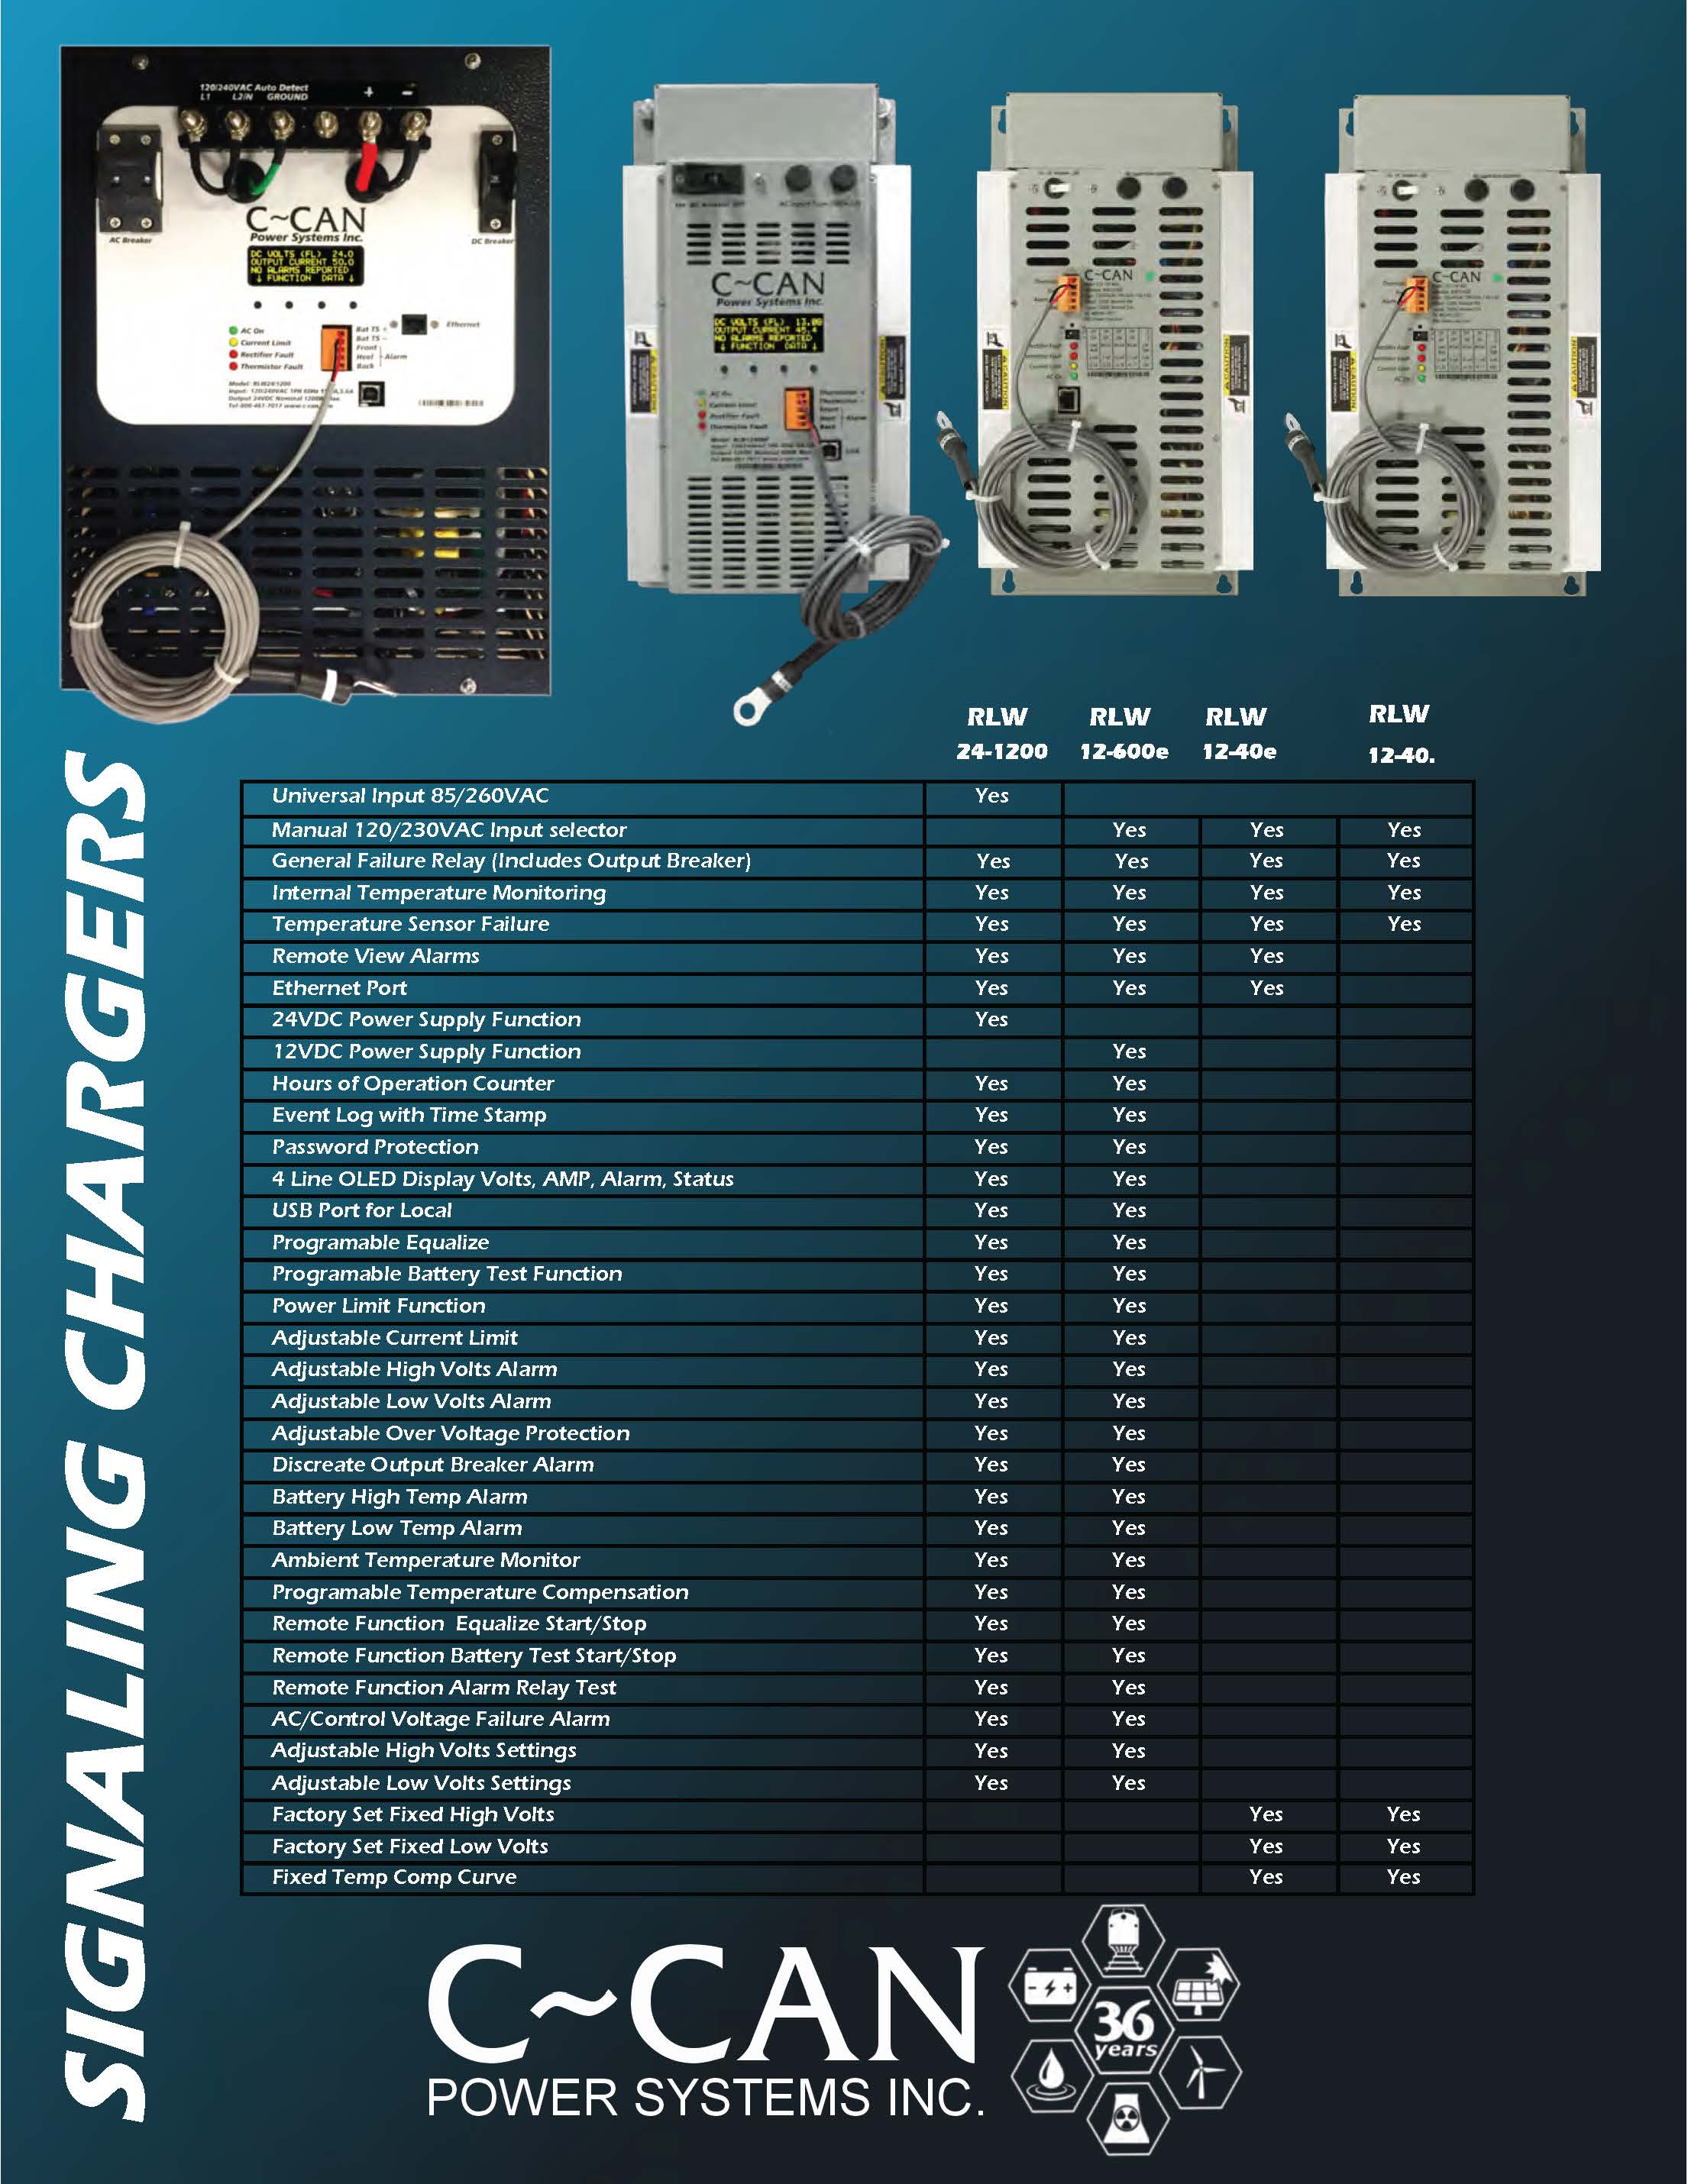 Ccan Power Systems Inc Rectifiers Converters Inverters Batteries 115 Vac Schematic Usb Chargers Rail